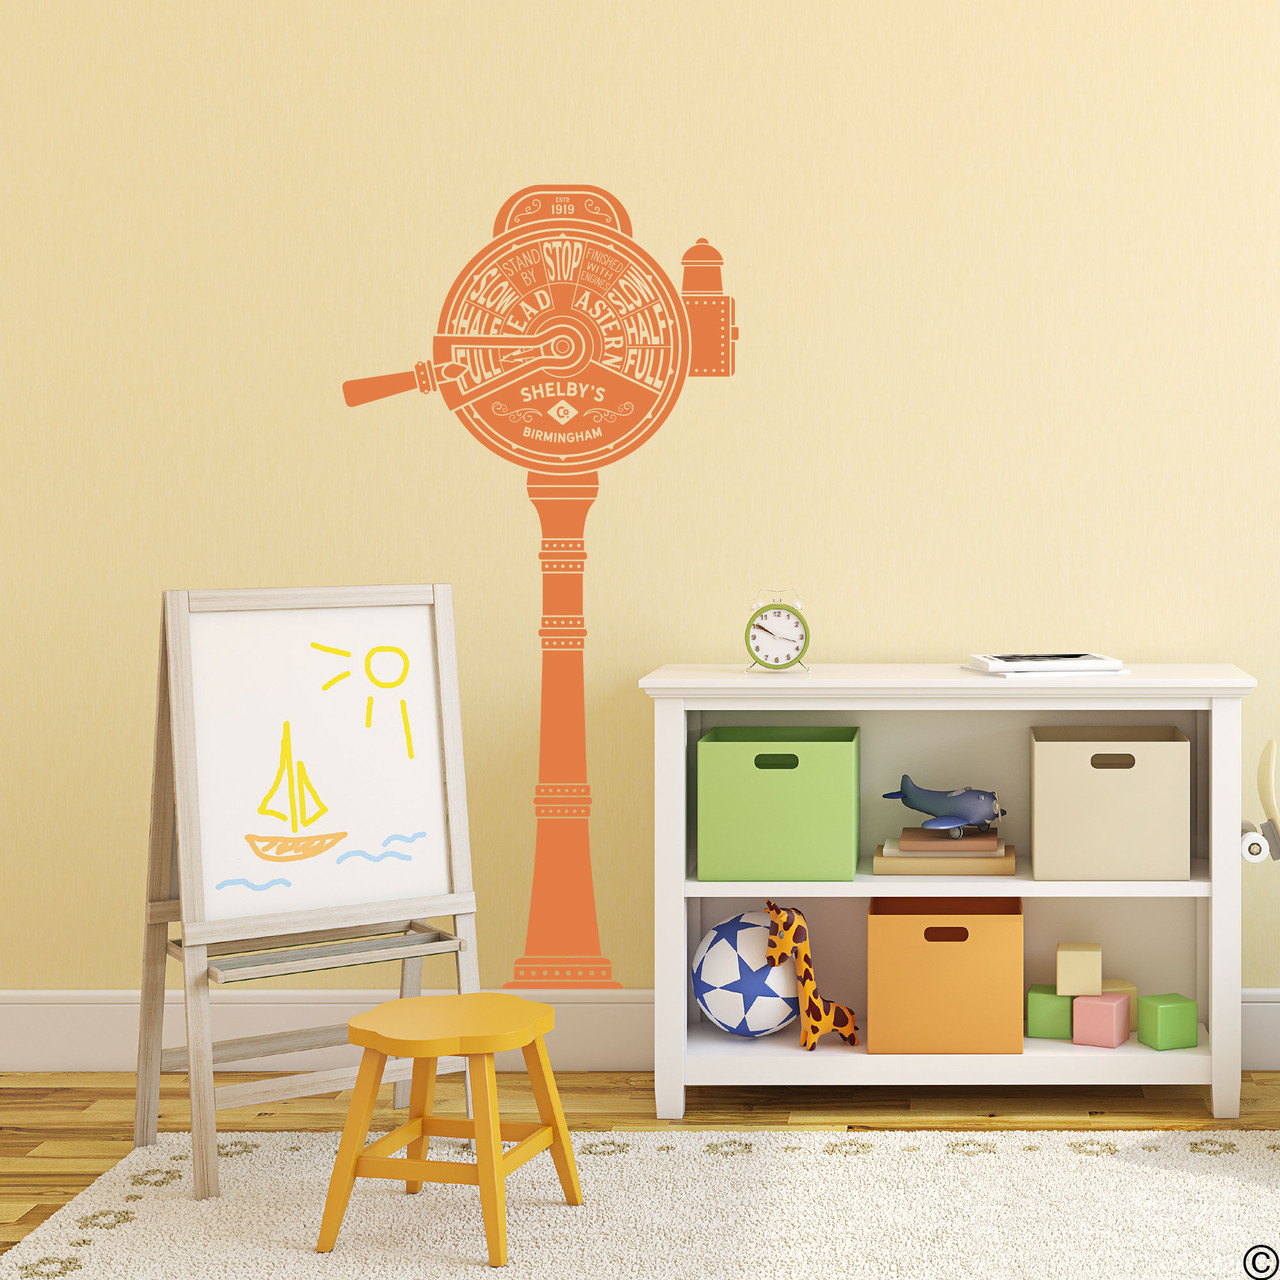 The ship telegraph wall decal shown here in persimmon vinyl color.